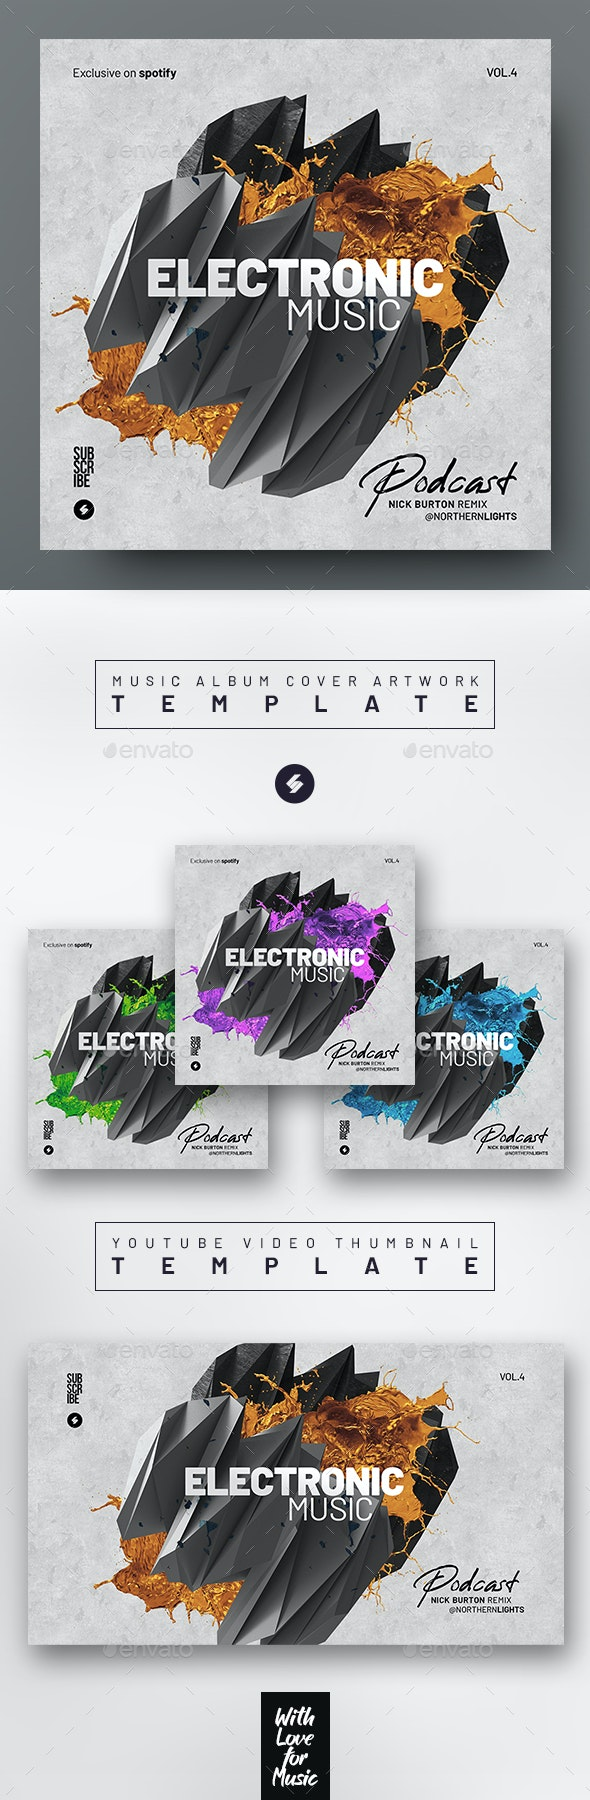 Electronic Music Podcast vol.4 – Album Cover Artwork Template - Miscellaneous Social Media